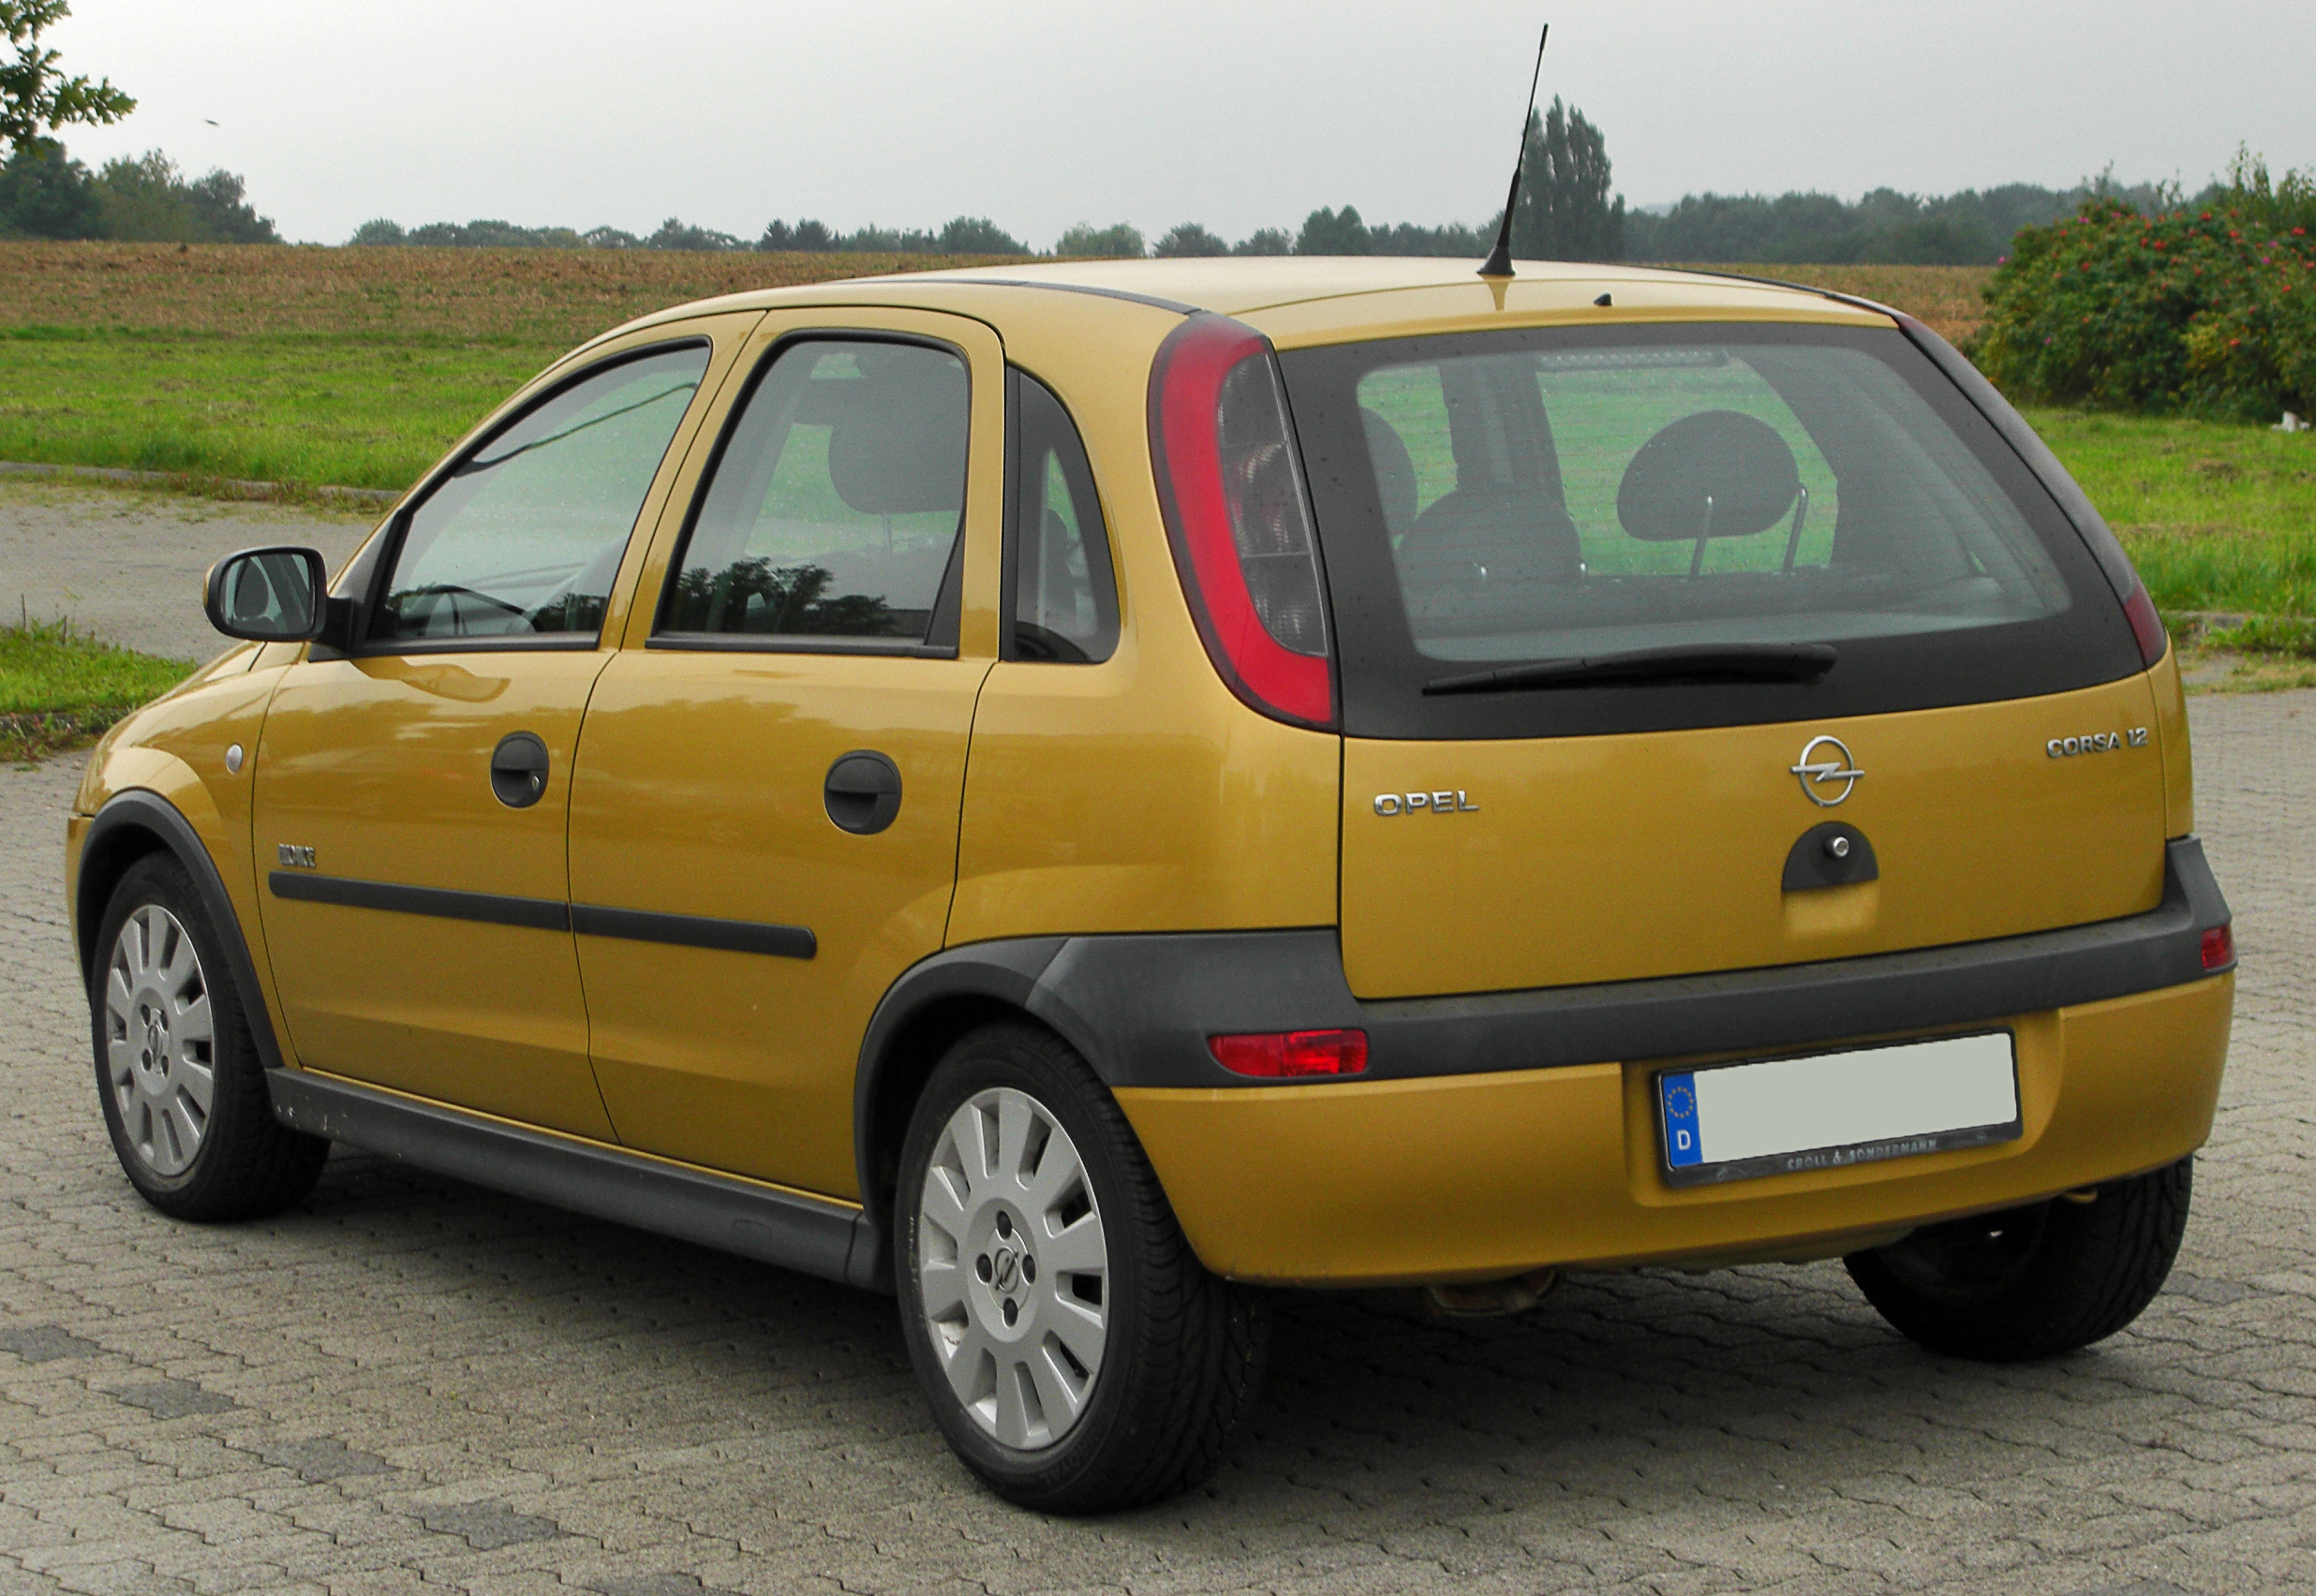 2001 opel corsa c pictures information and specs auto. Black Bedroom Furniture Sets. Home Design Ideas